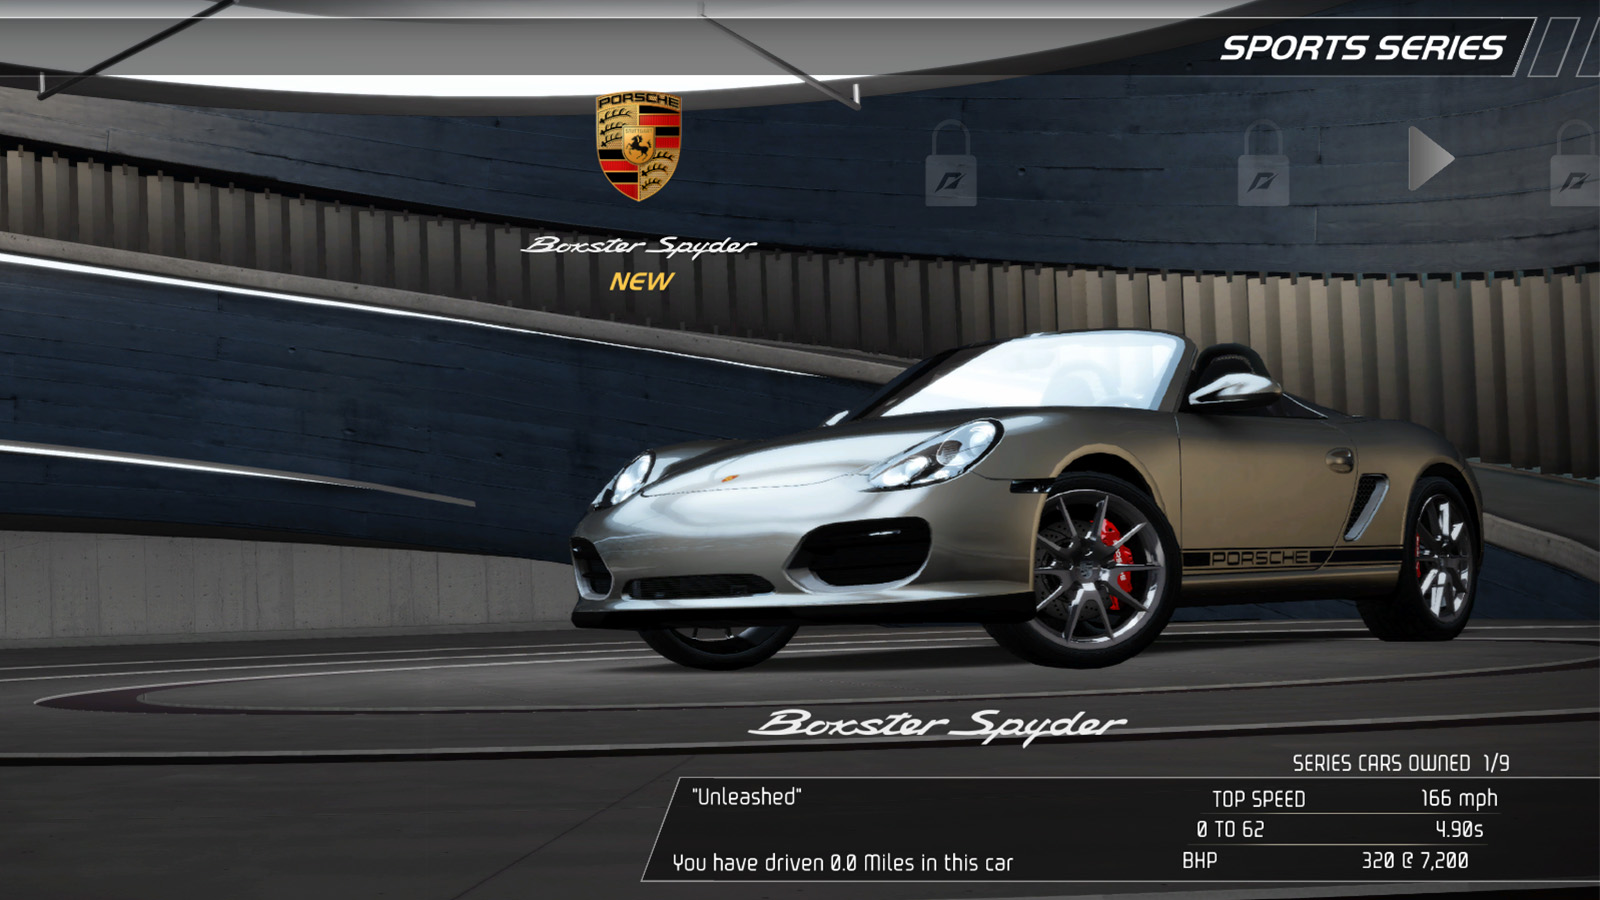 Porsche Boxter Need For Speed Remastered